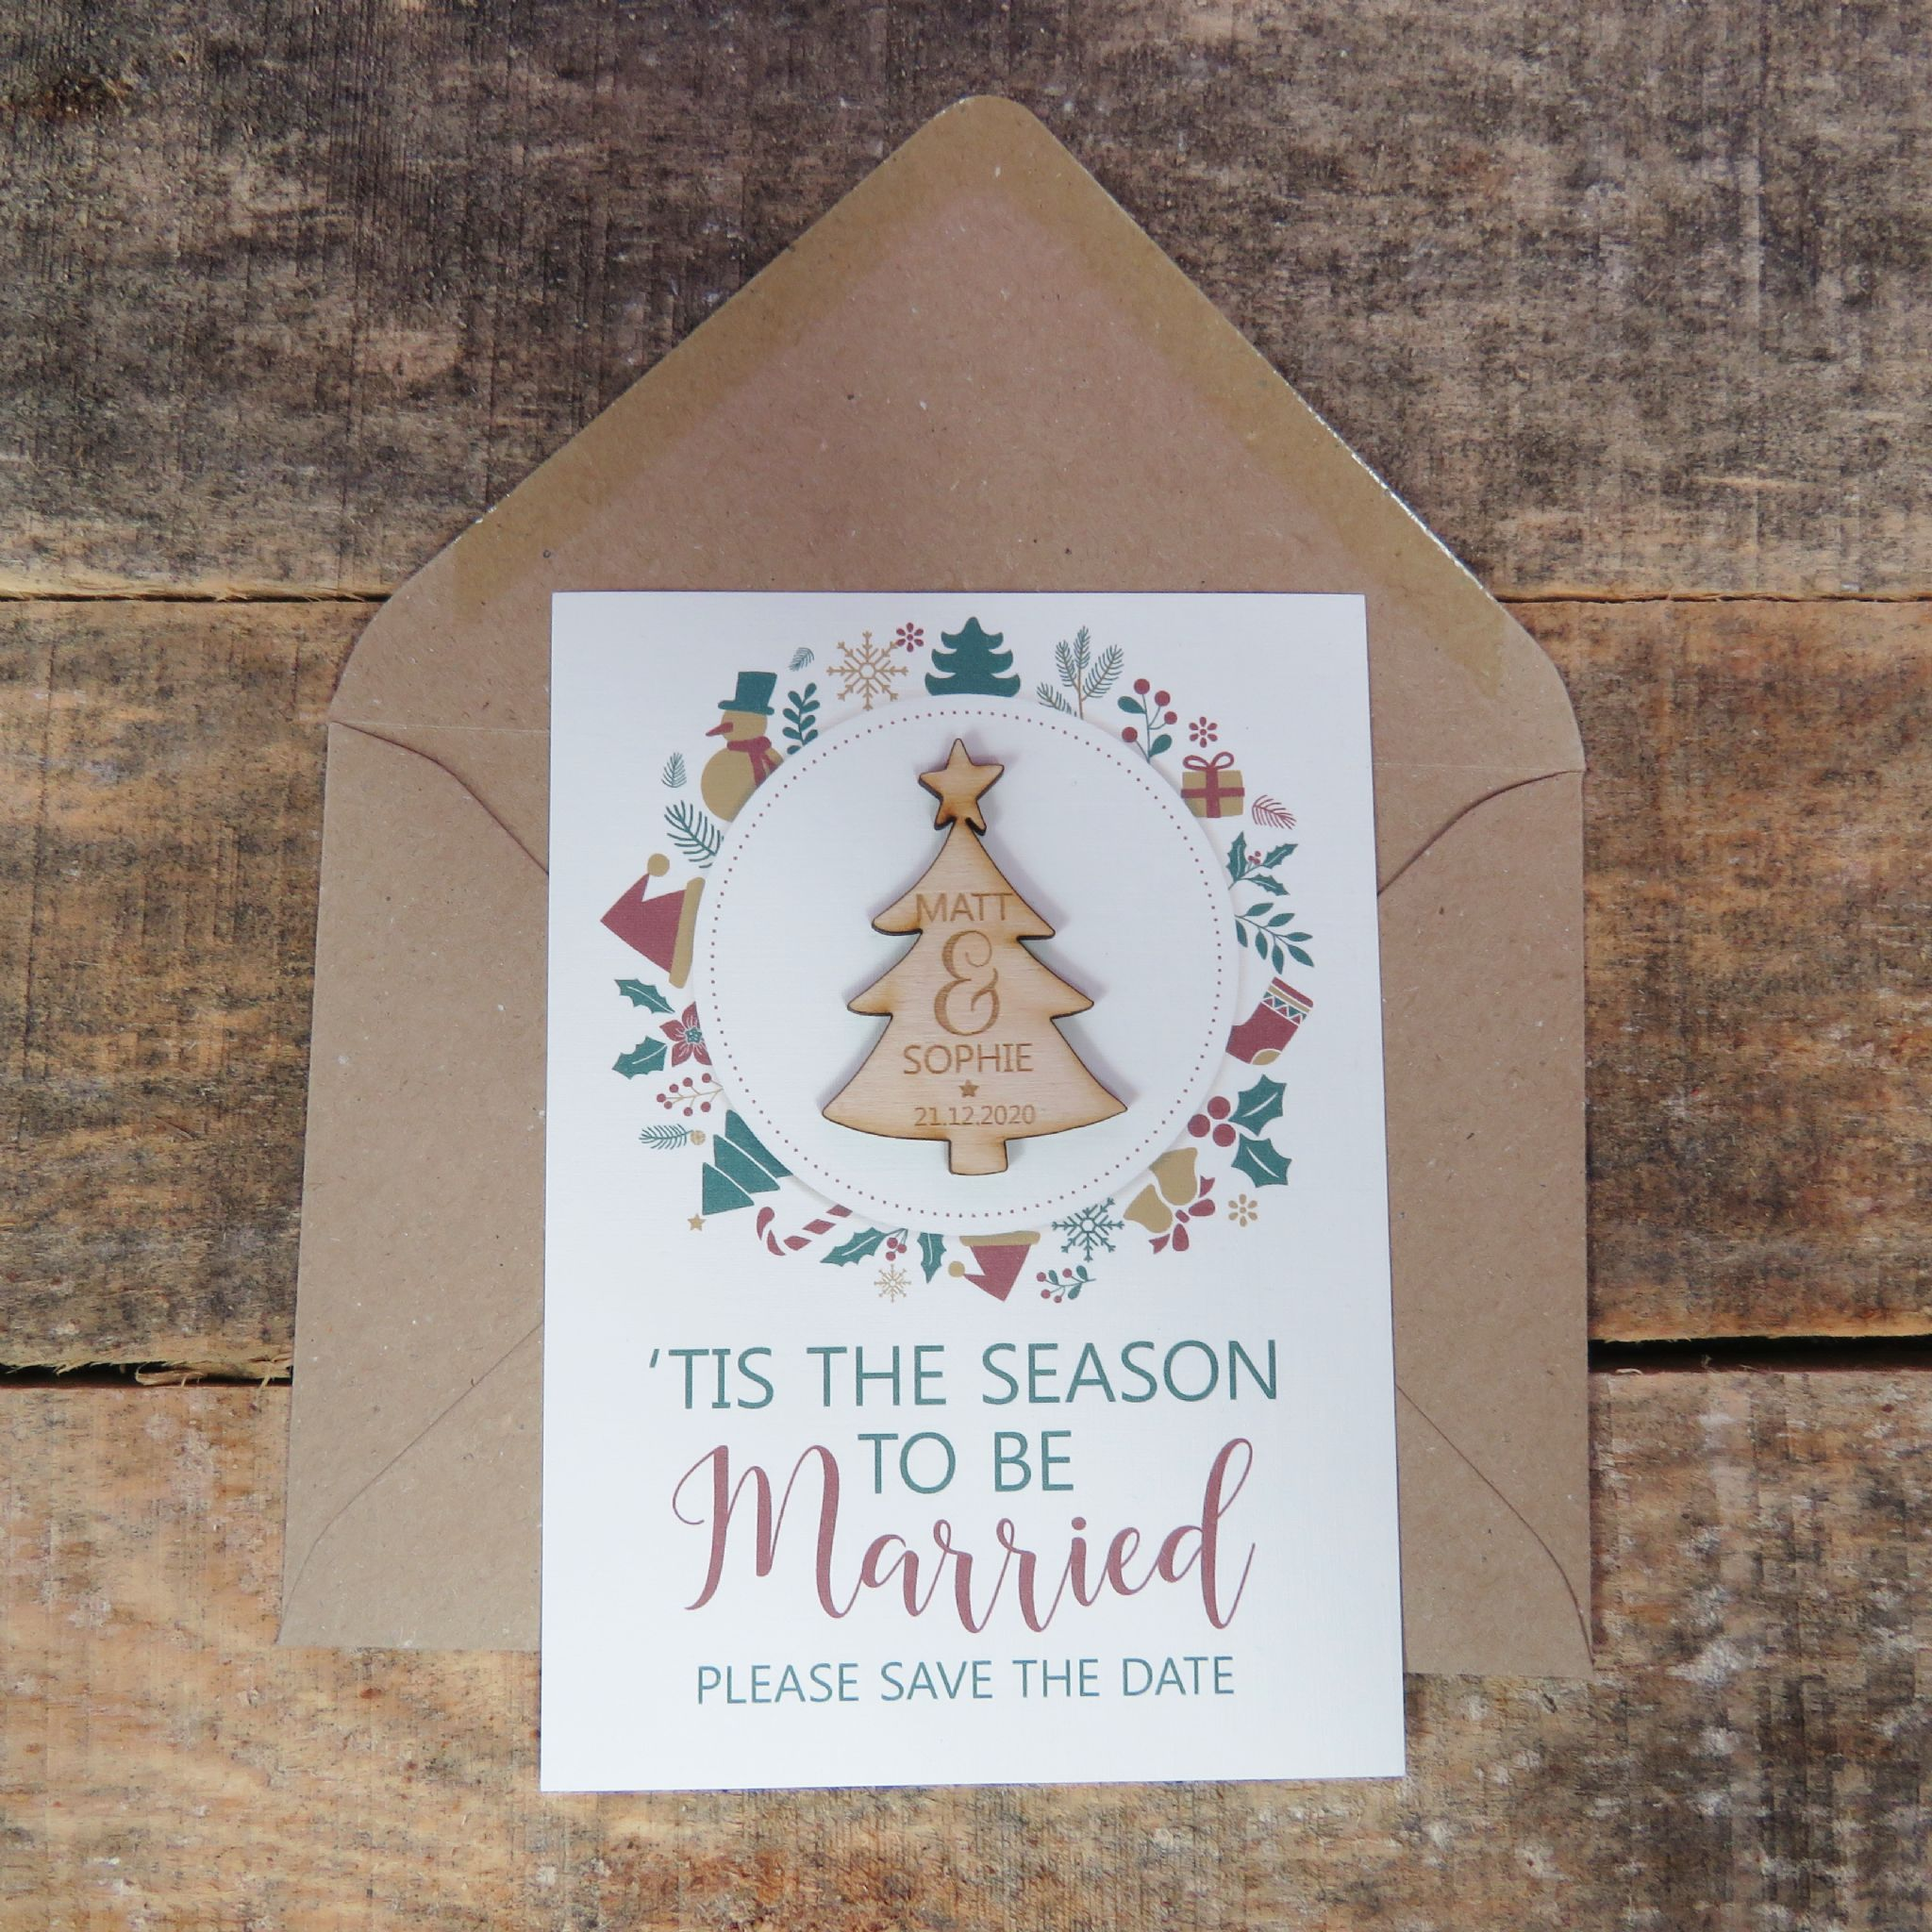 Christmas Save The Date Graphics.Wooden Christmas Save The Date Magnets Wooden Magnets Save The Dates Wedding Invitation